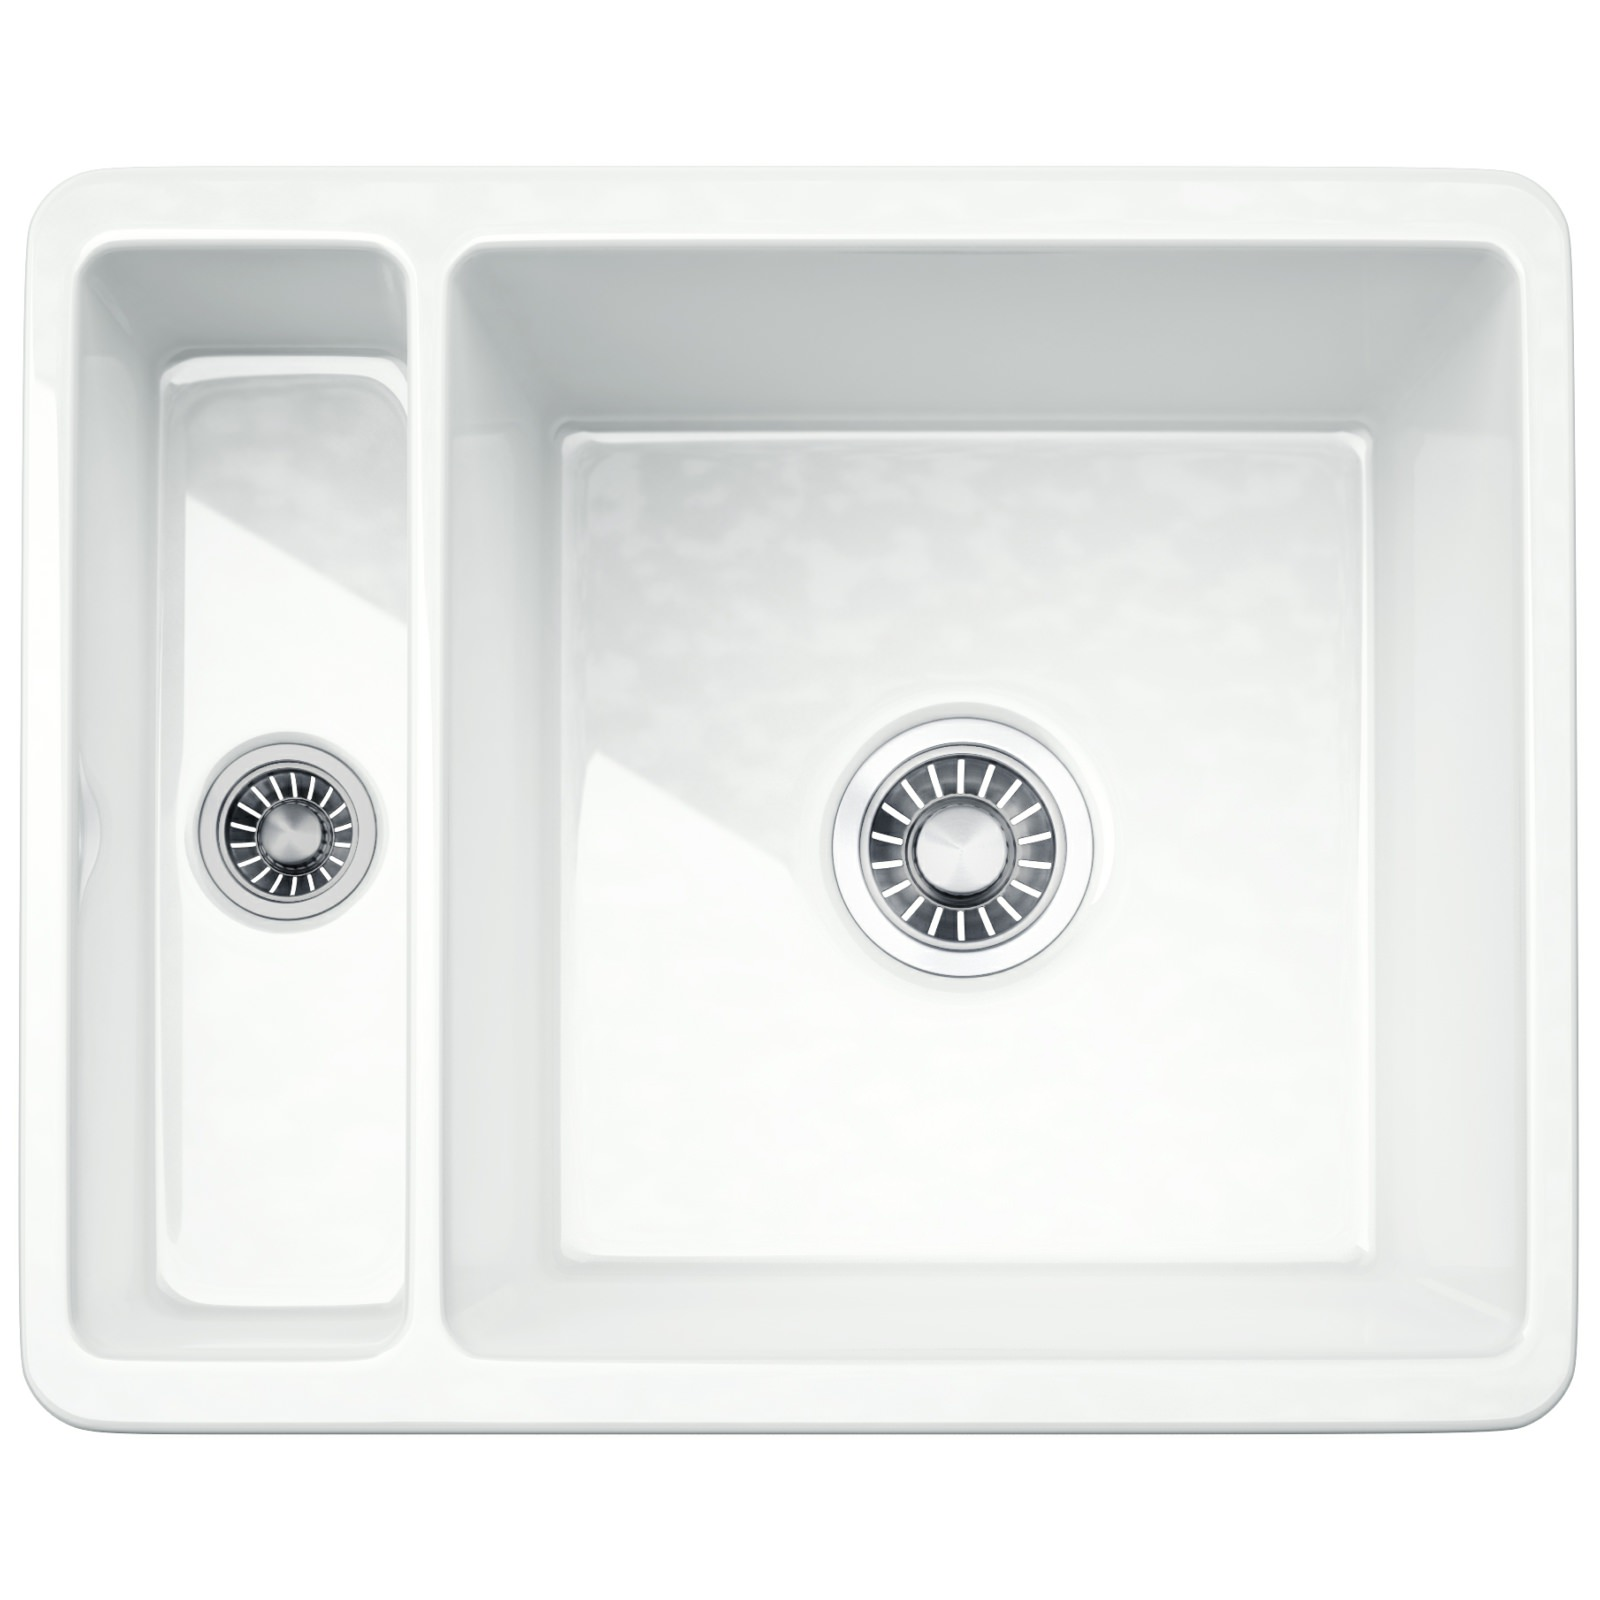 Franke Kubus KBK 160 Ceramic 1.5 Bowl Undermount Kitchen Sink ...